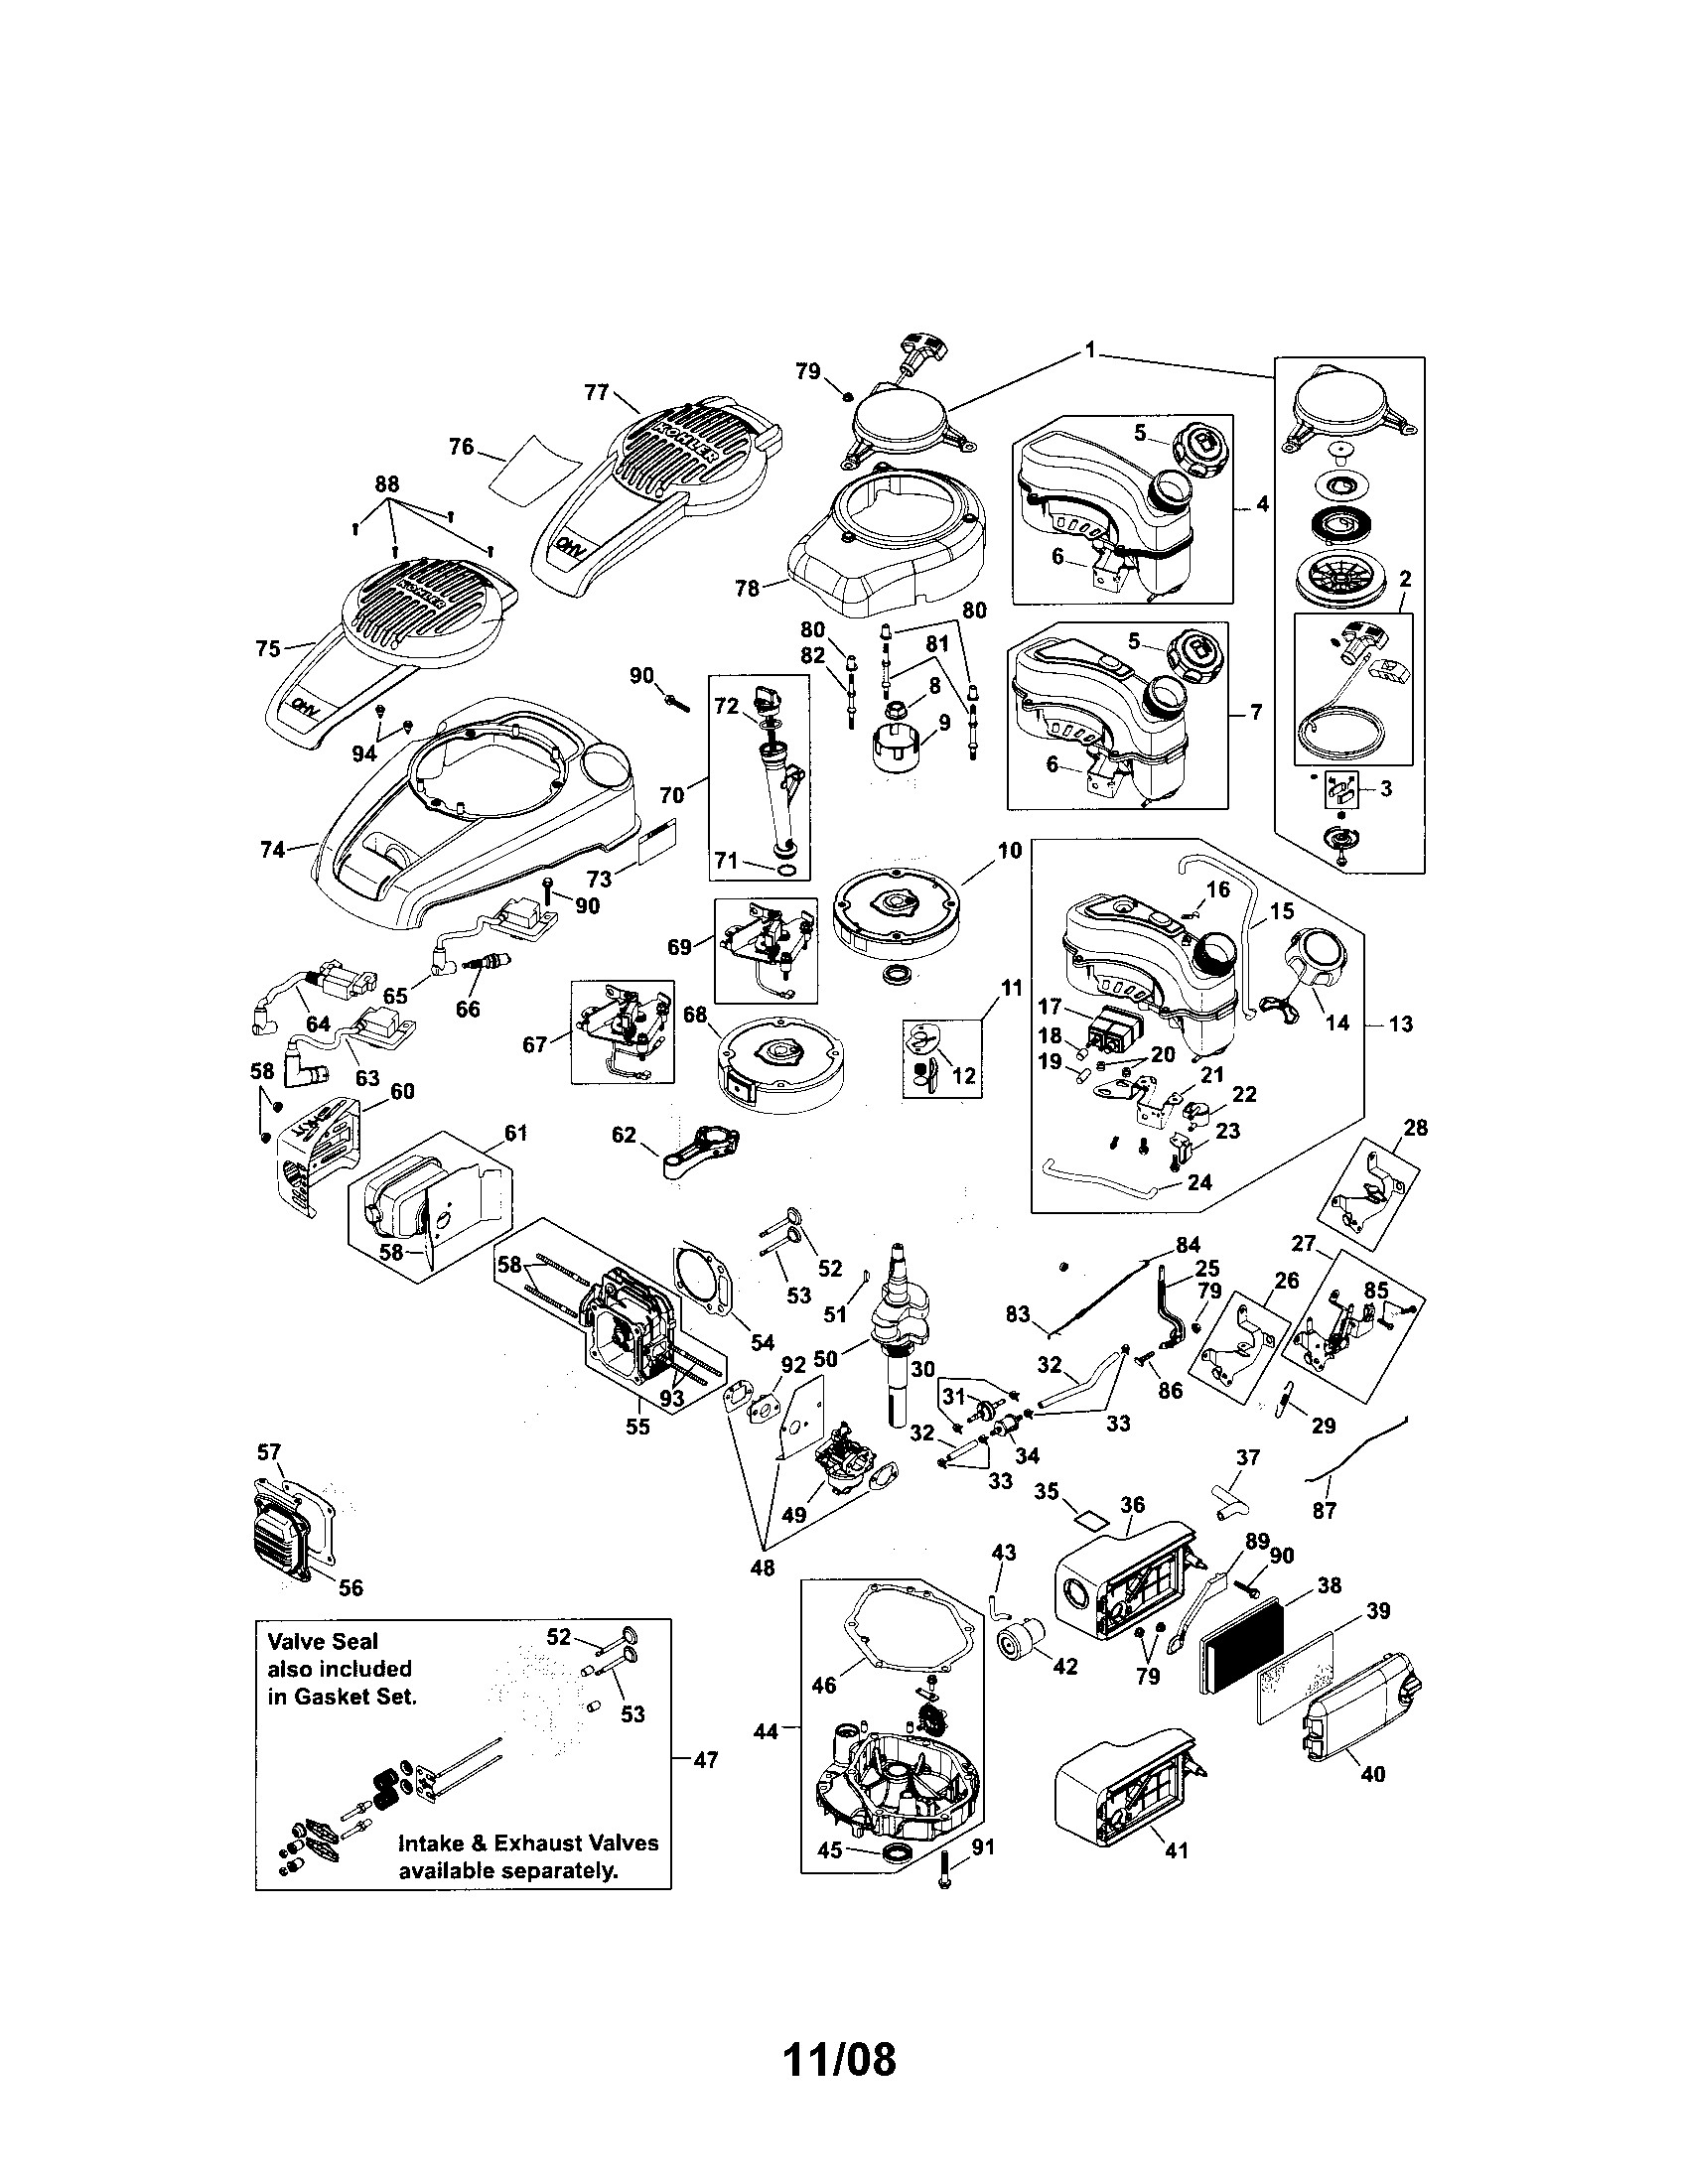 Kohler K241 Engine Diagram